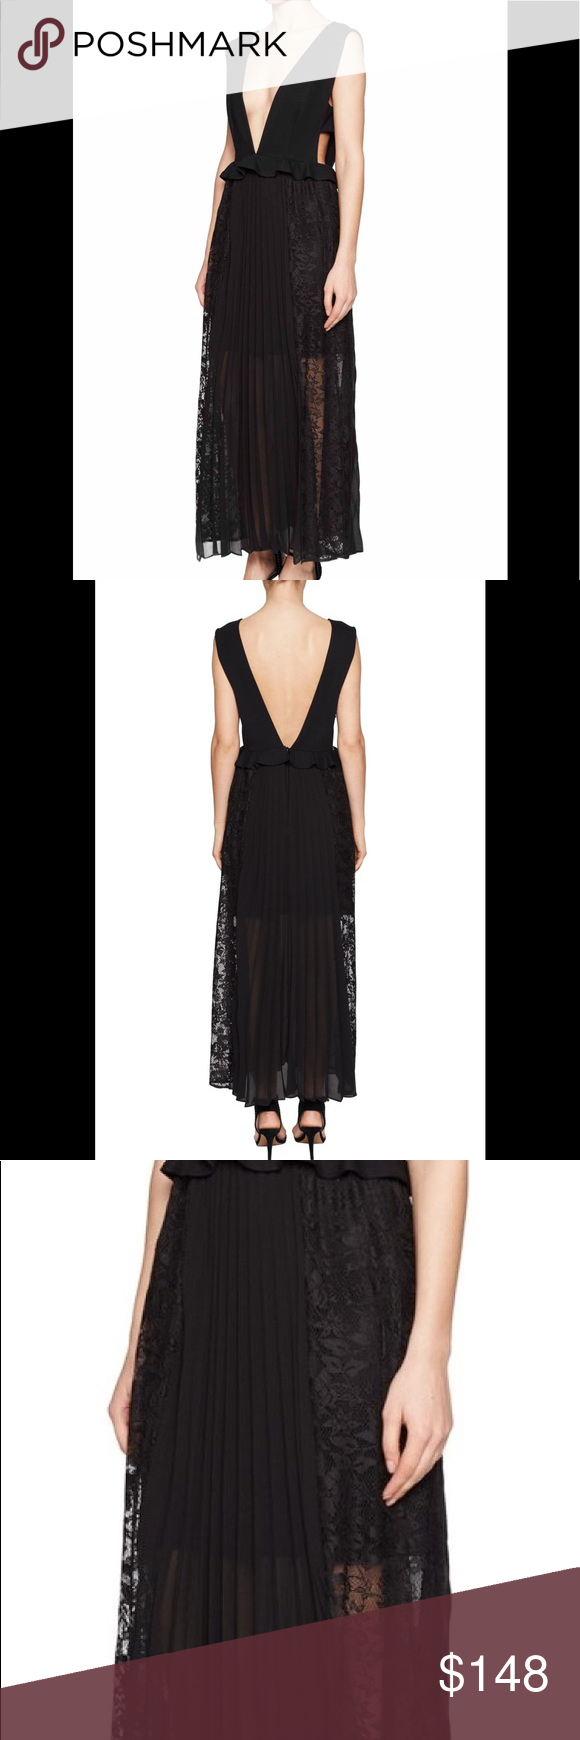 d56498c0248 French Connection Angelina Pleat Lace Jersey Dress Soft jersey down the  plunging neckline and back contrast